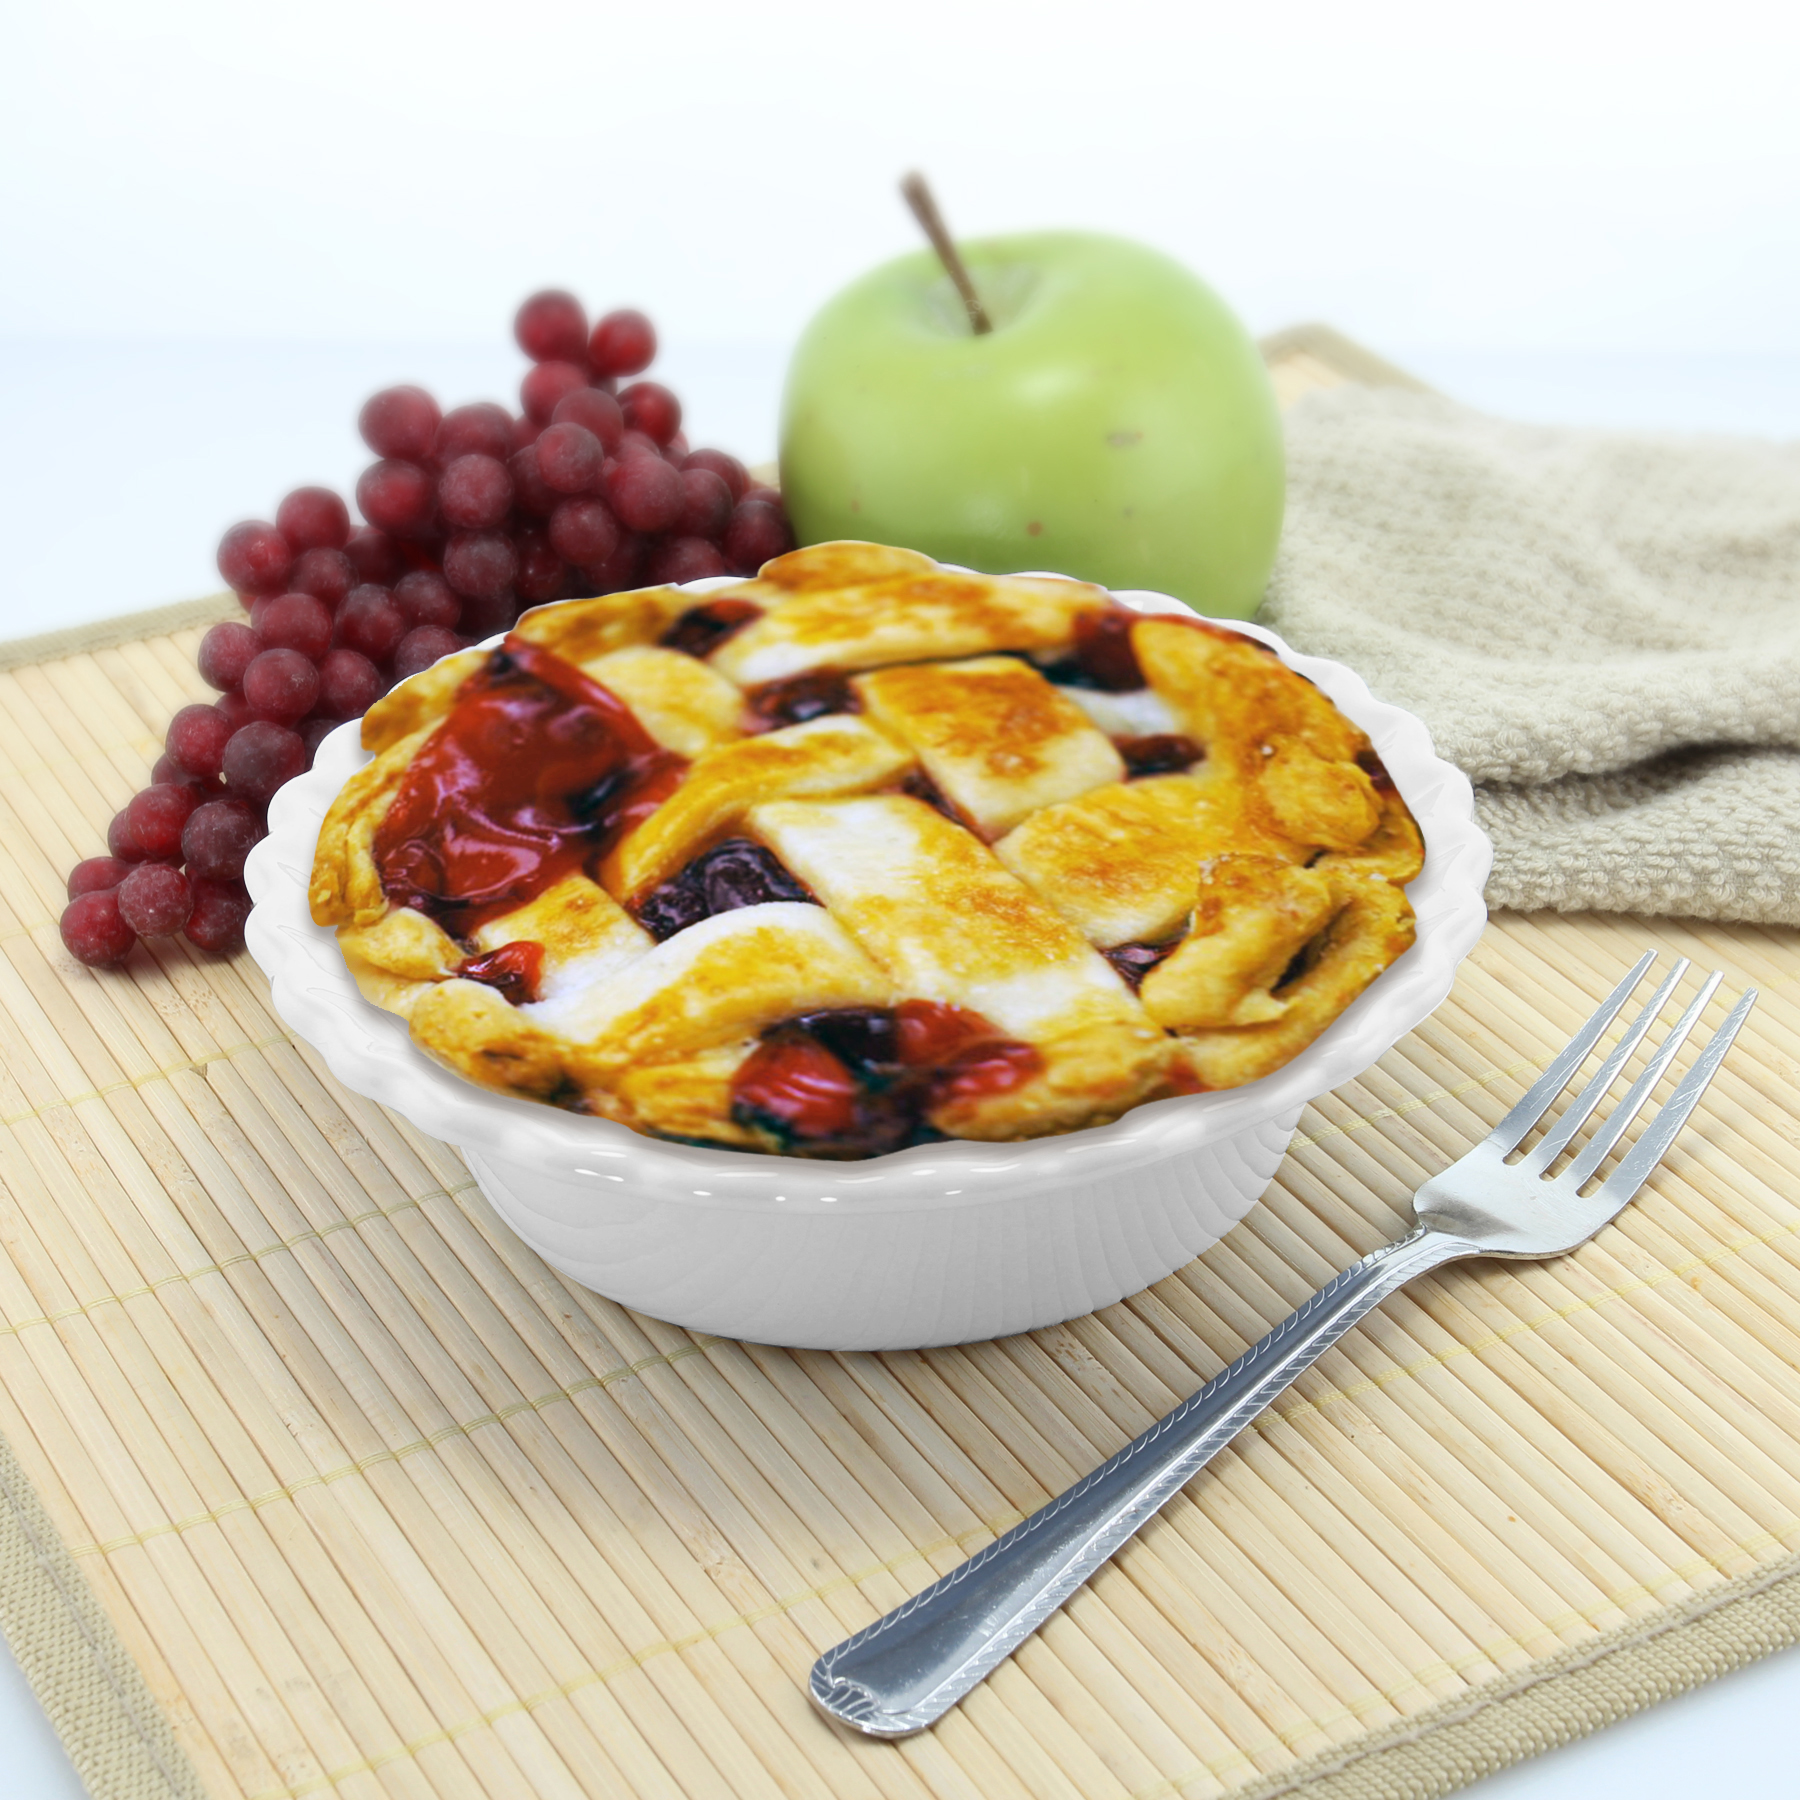 mini pie dish with pie cooked inside